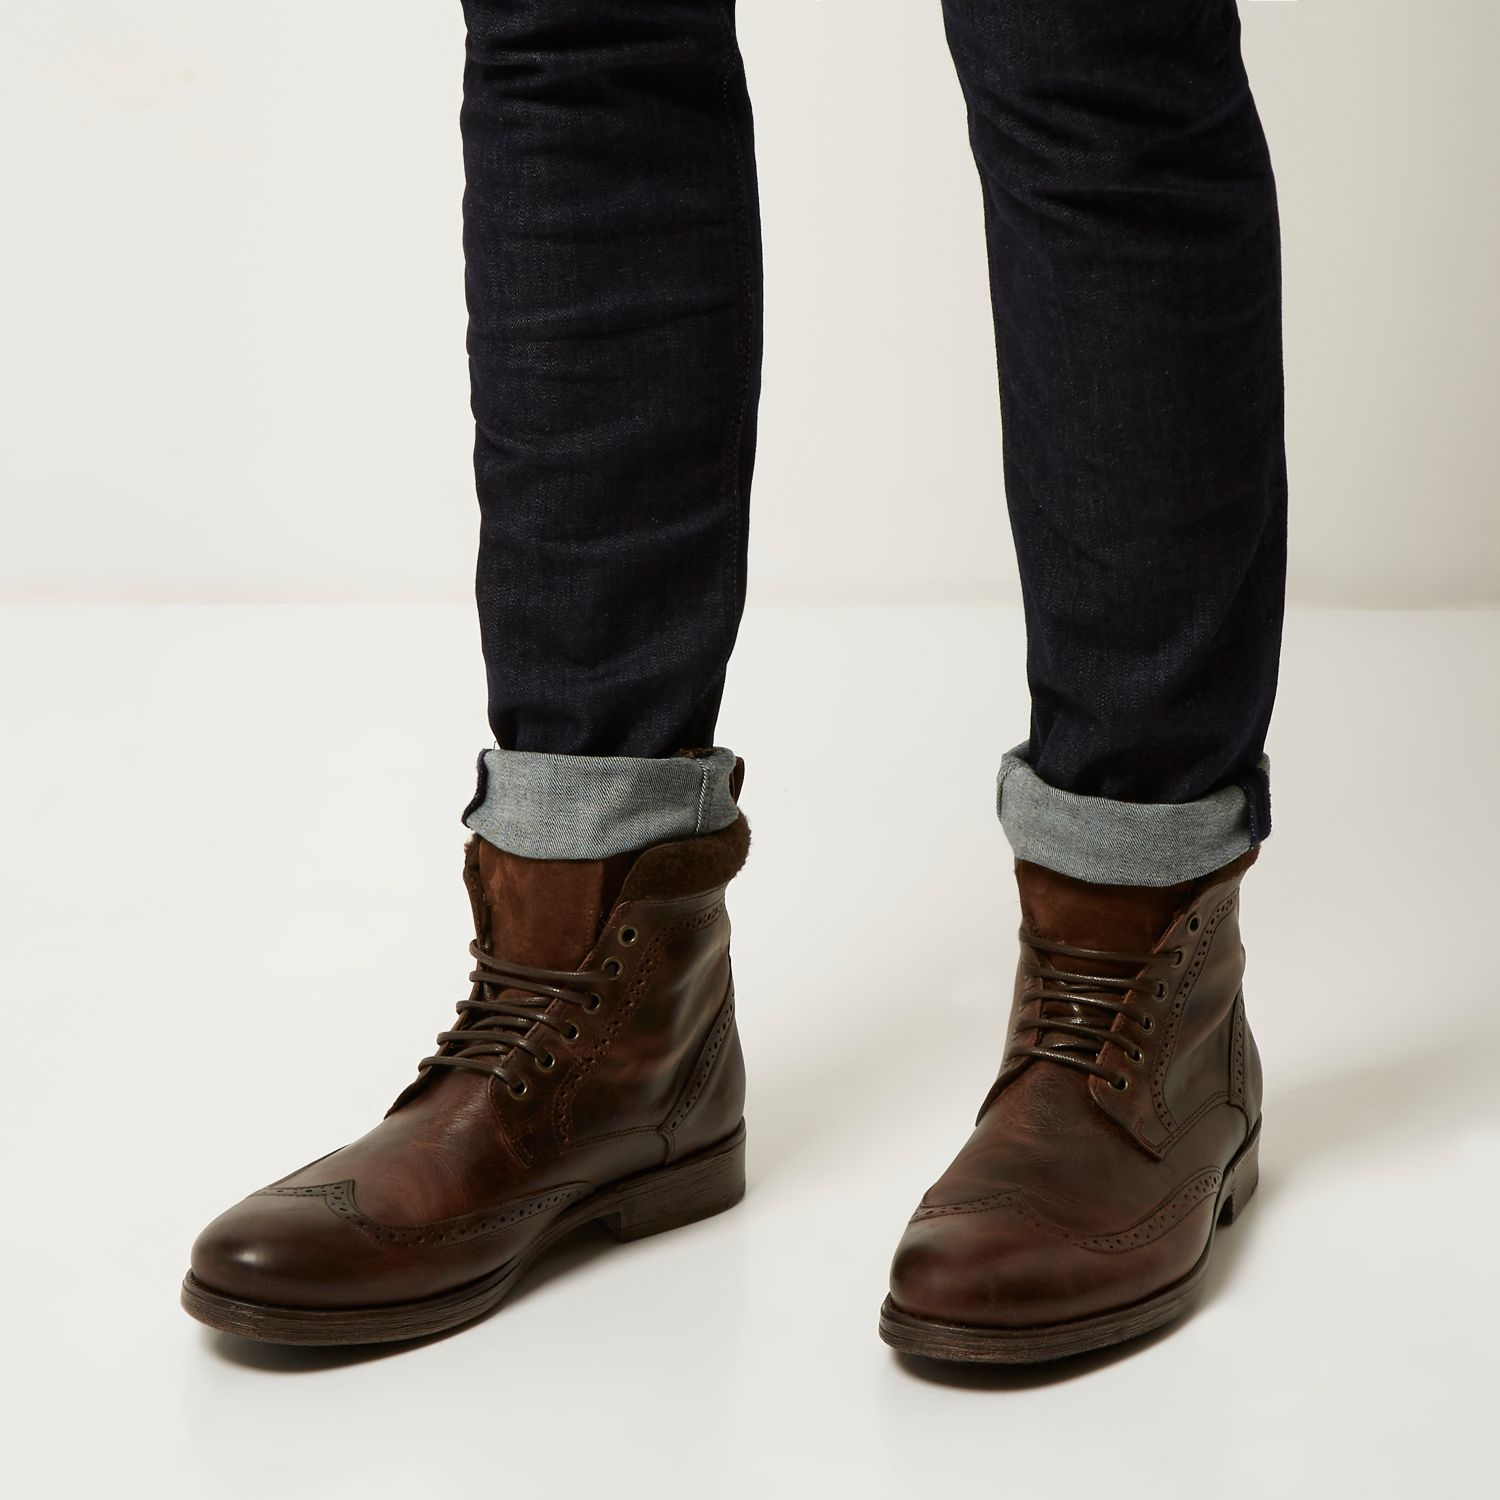 4506421472cd1 Lyst - River Island Brown Leather Brogue Worker Boots in Brown for Men